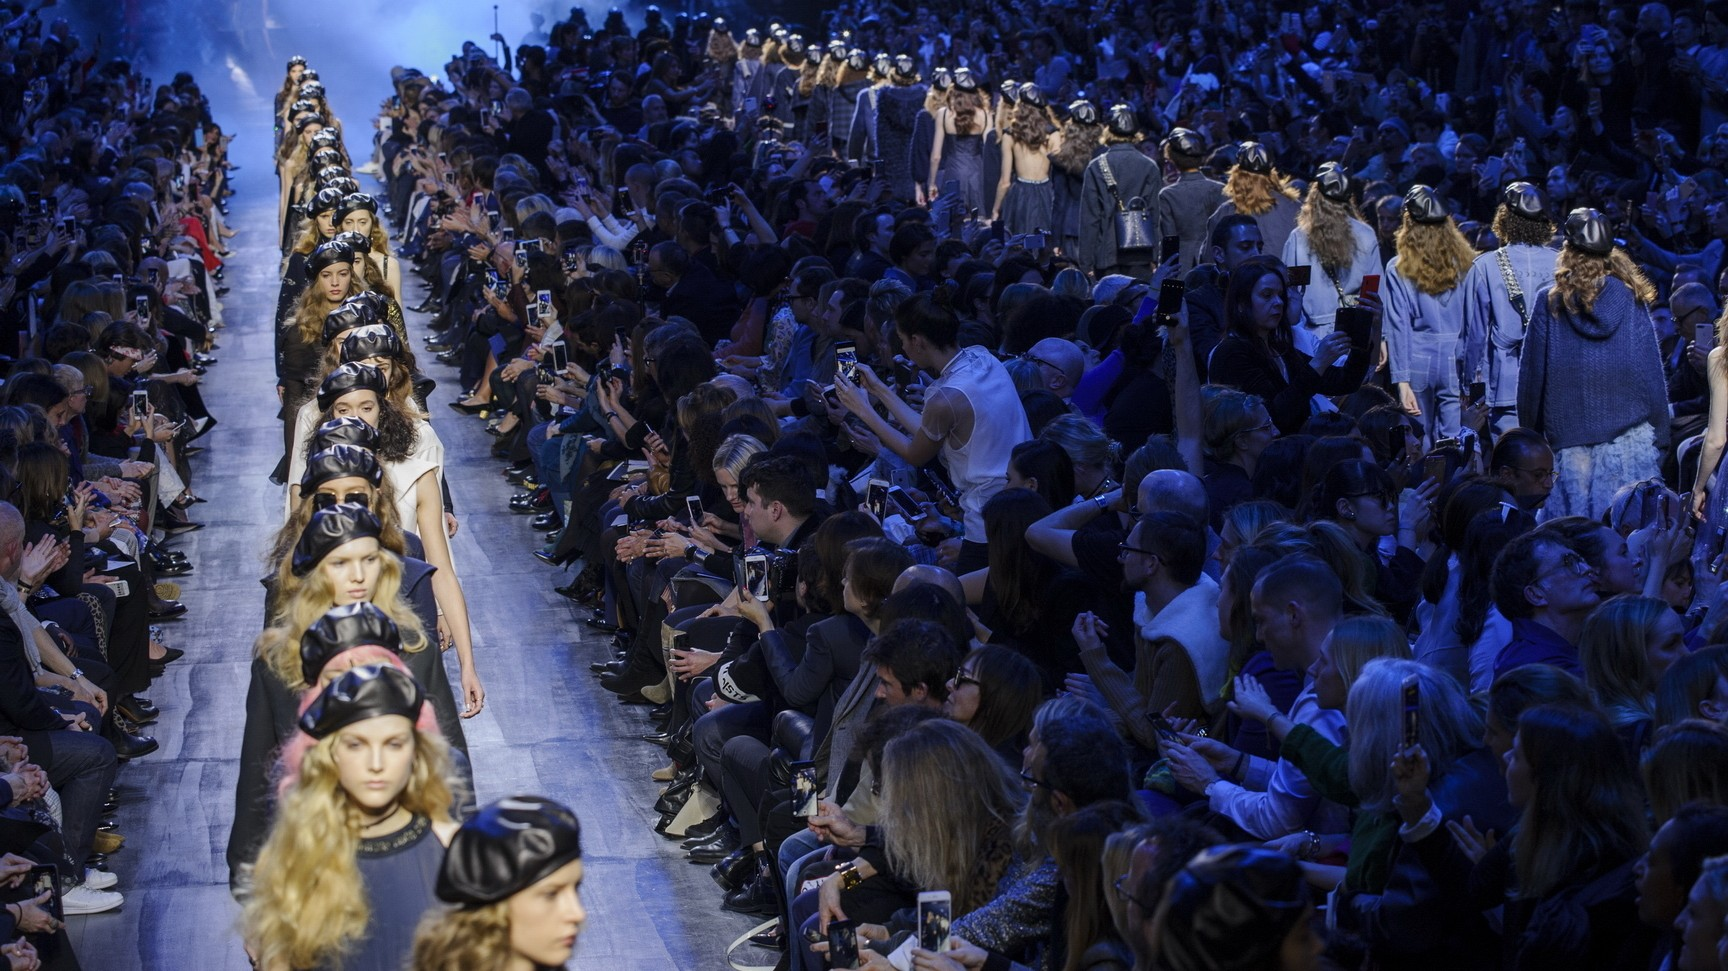 the hunger games: dior, yohji yamamoto and loewe at paris fashion week